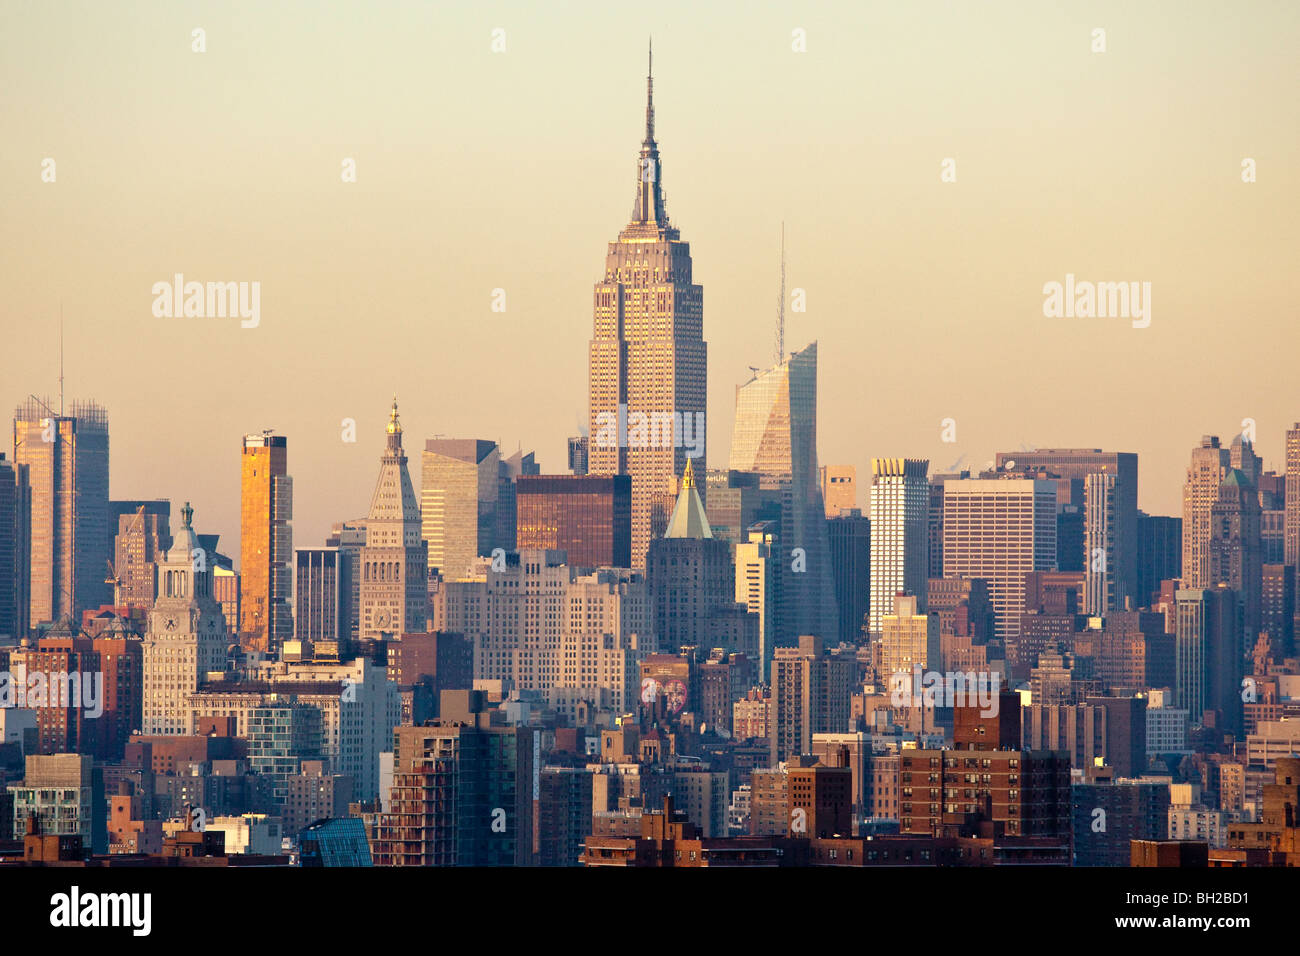 Empire State Building, New York City Photo Stock